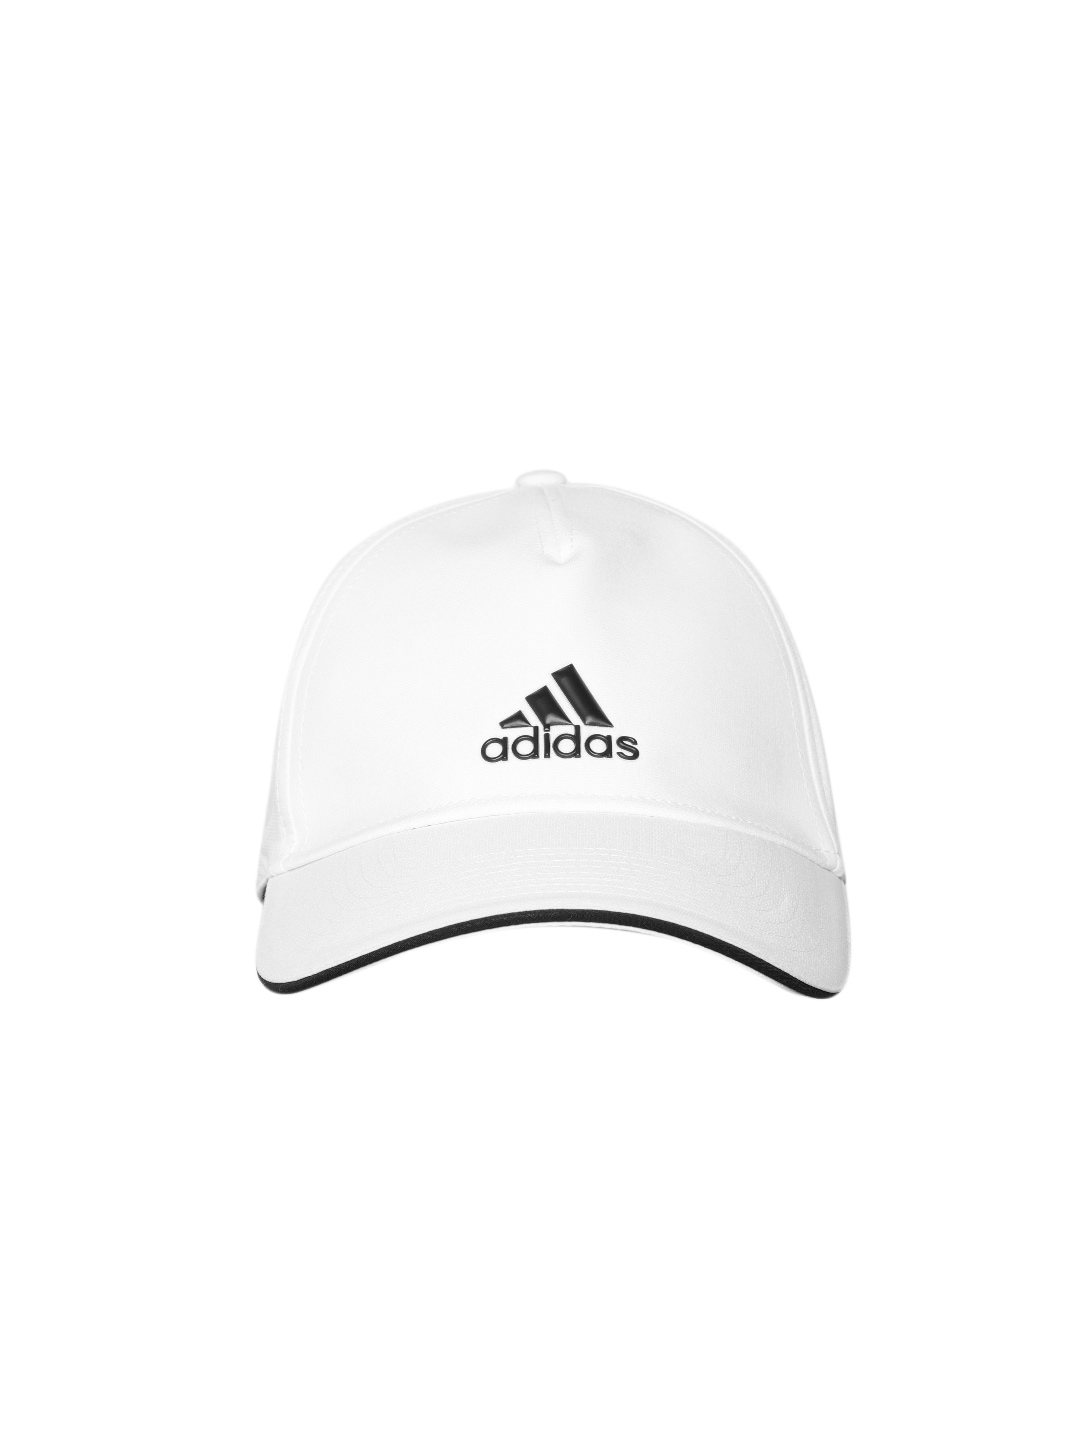 Adidas Cap - Buy Adidas Caps for Women   Girls Online  fd55389b27b1